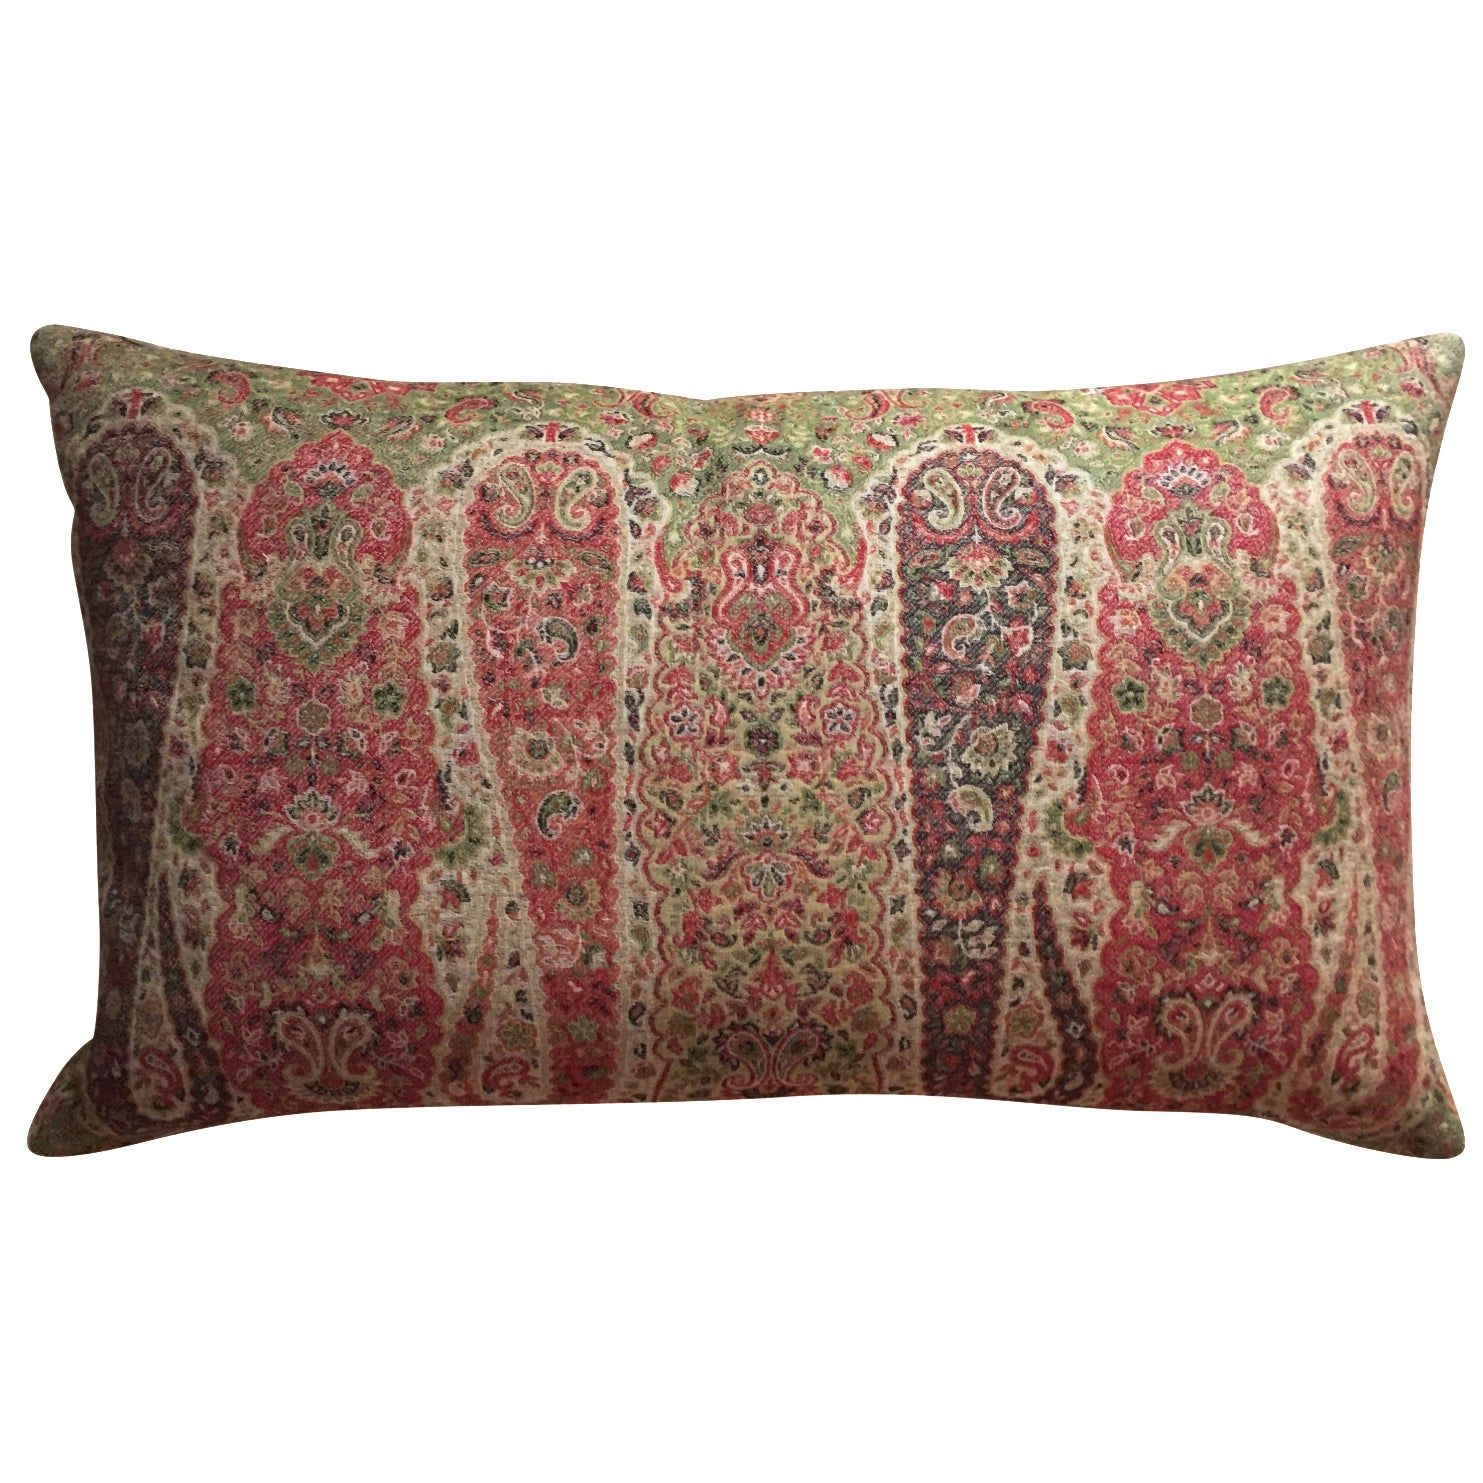 Vintage Wool Paisley Lumbar Pillow Chairish Paisley Bedding Shop Decorative Pillows Vintage Wool